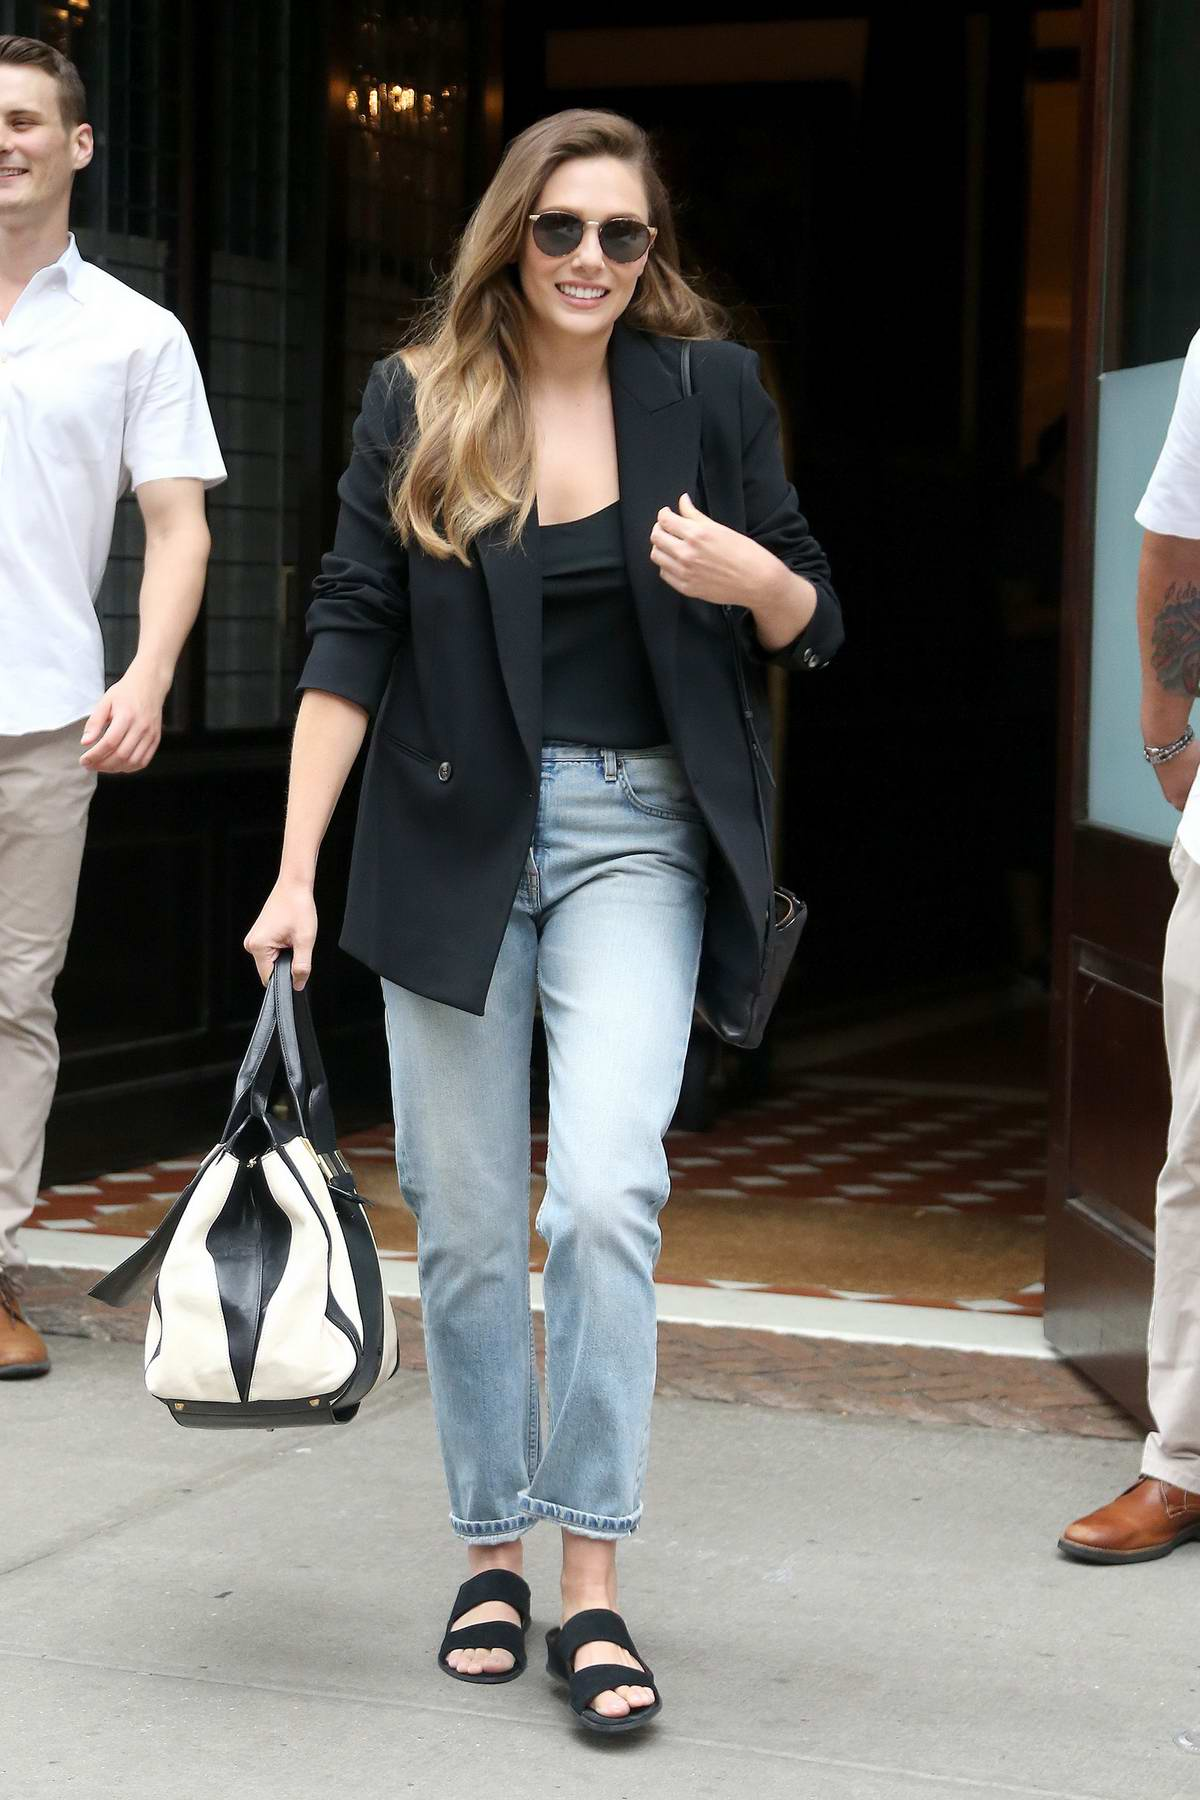 Elizabeth Olsen keeps it casual in a black blazer and jeans while stepping out in New York City